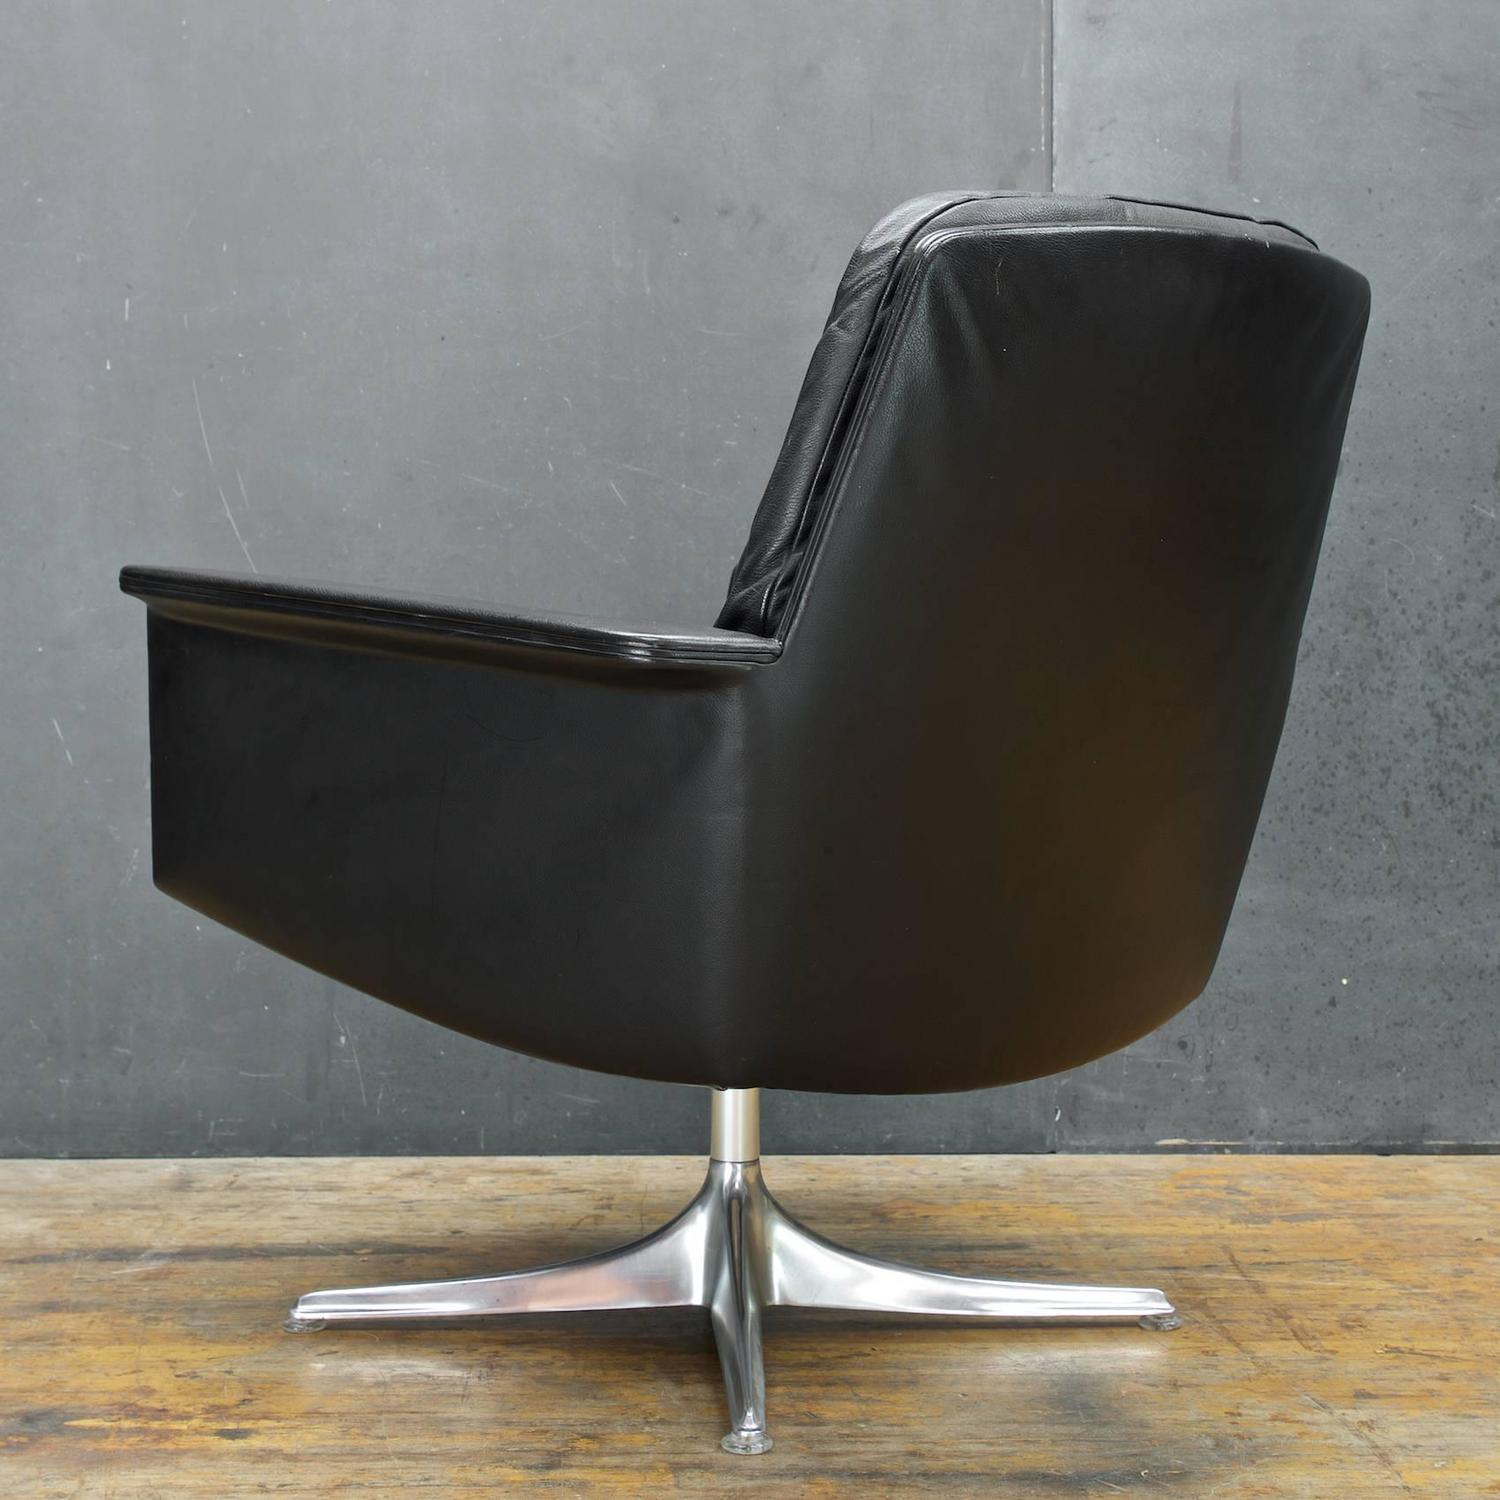 black leather swivel lounge chair folding rocking vintage by horst bruning for cor